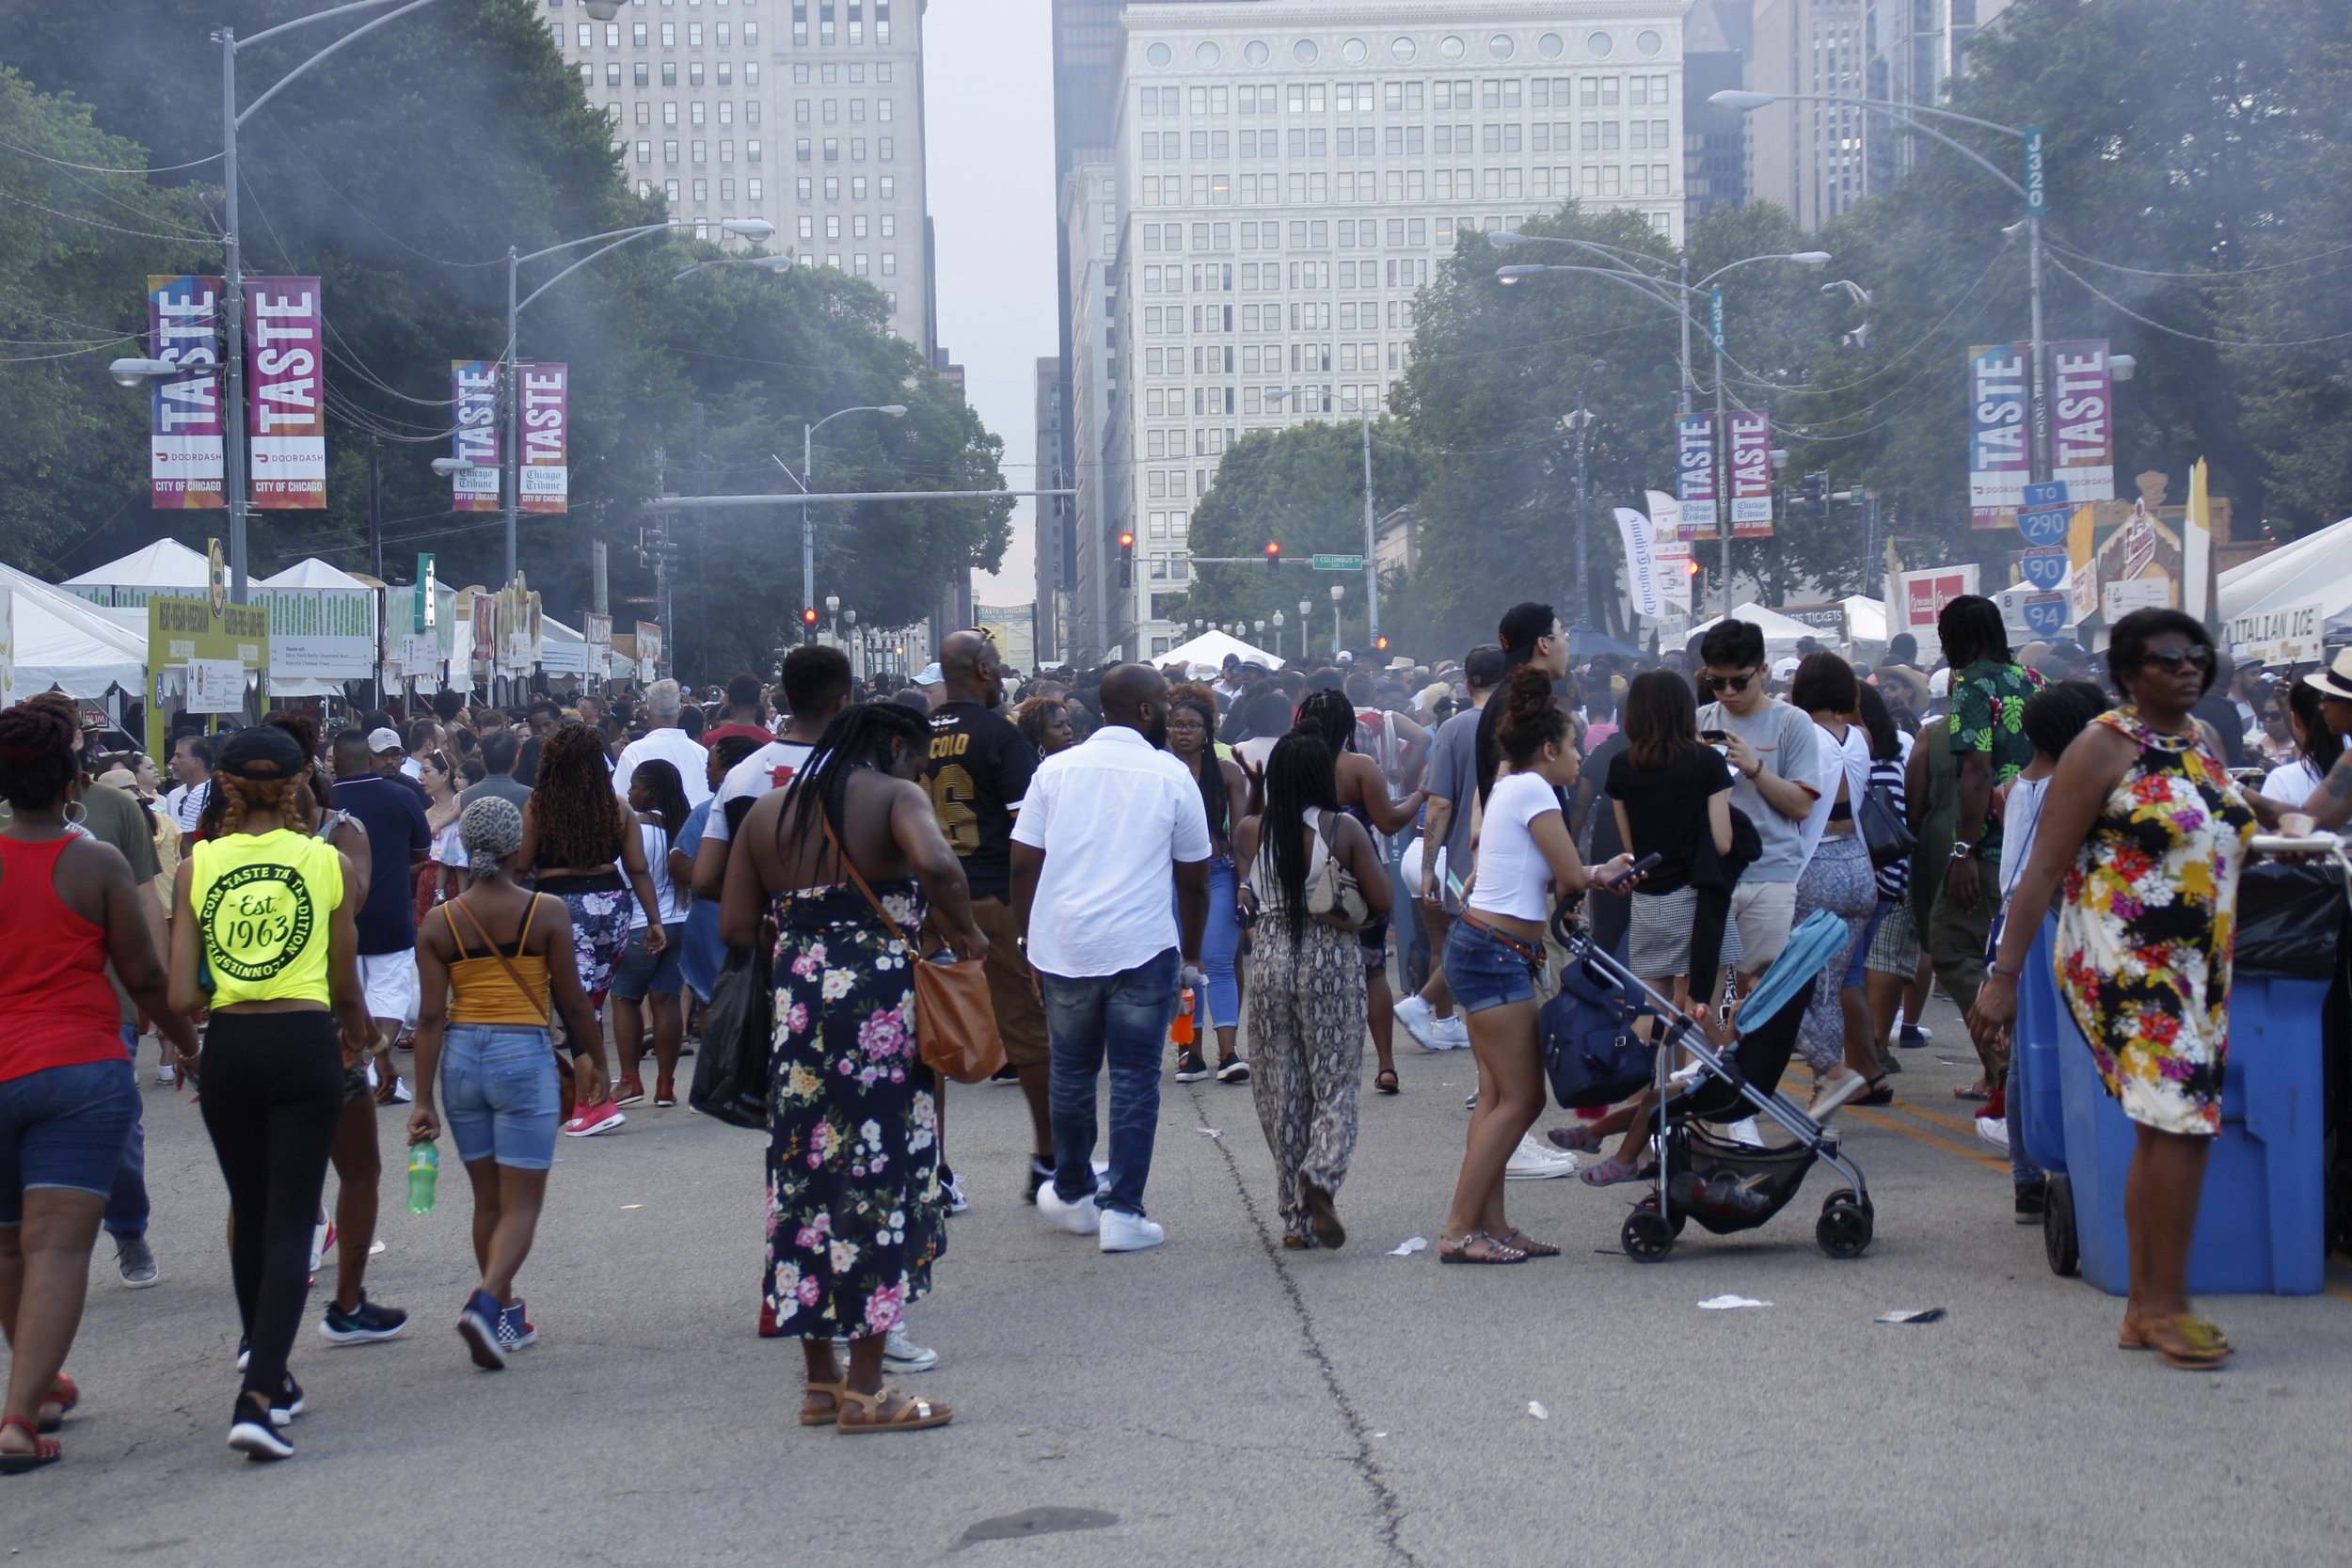 Diverse crowds swarmed the streets at the 39th annual Taste of Chicago. Chicago Police Department projected 1.6 million people visited this year.